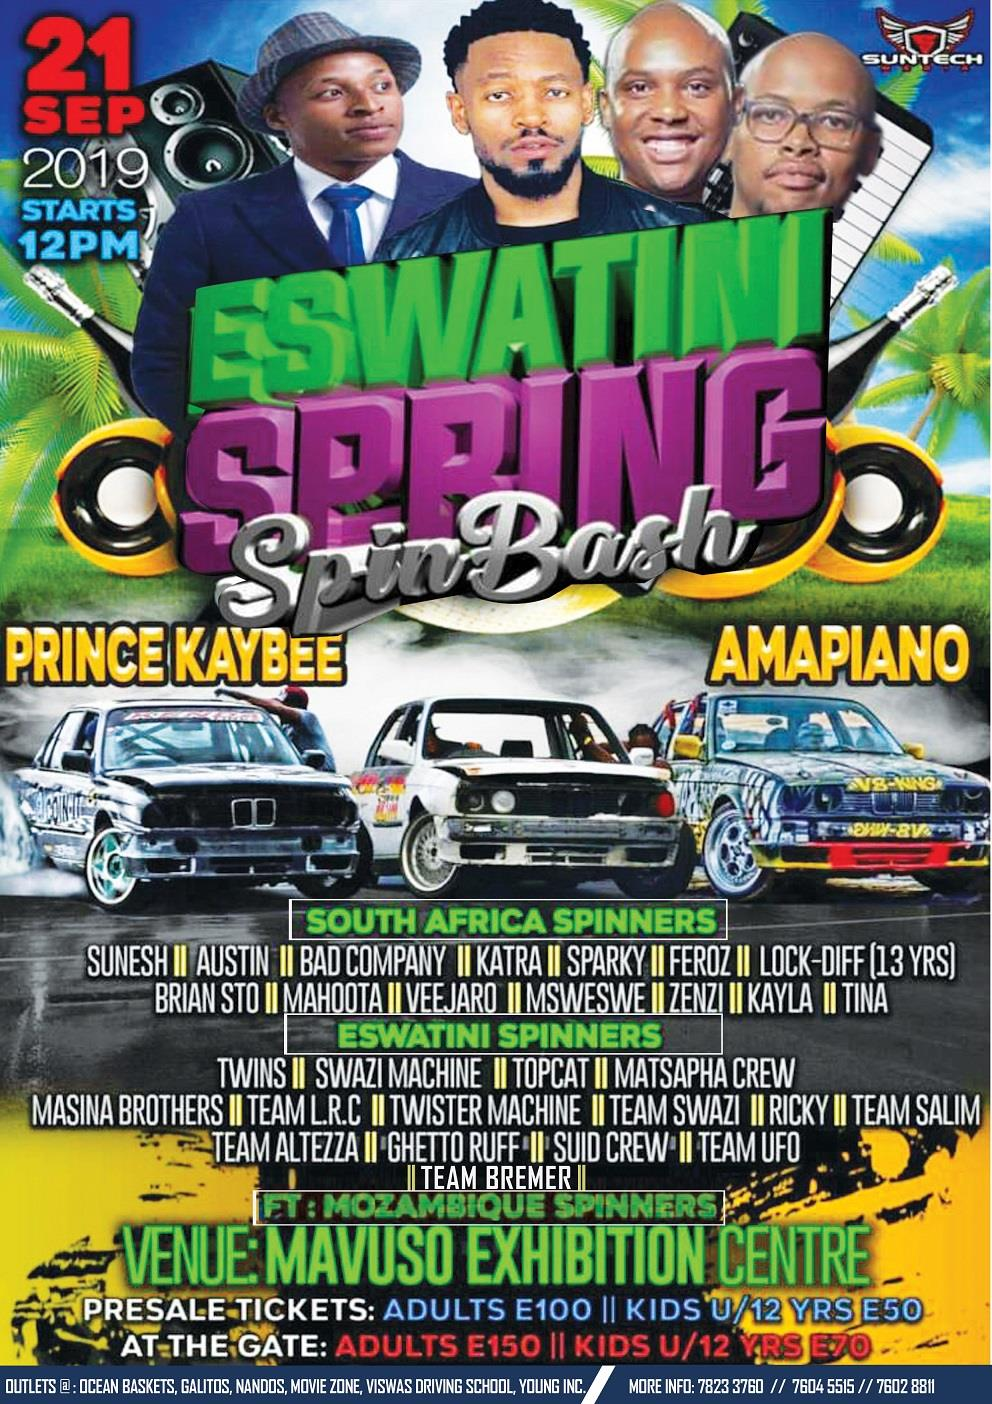 Eswatini Spring Spin Bash ft Prince Kaybee and Amapiano